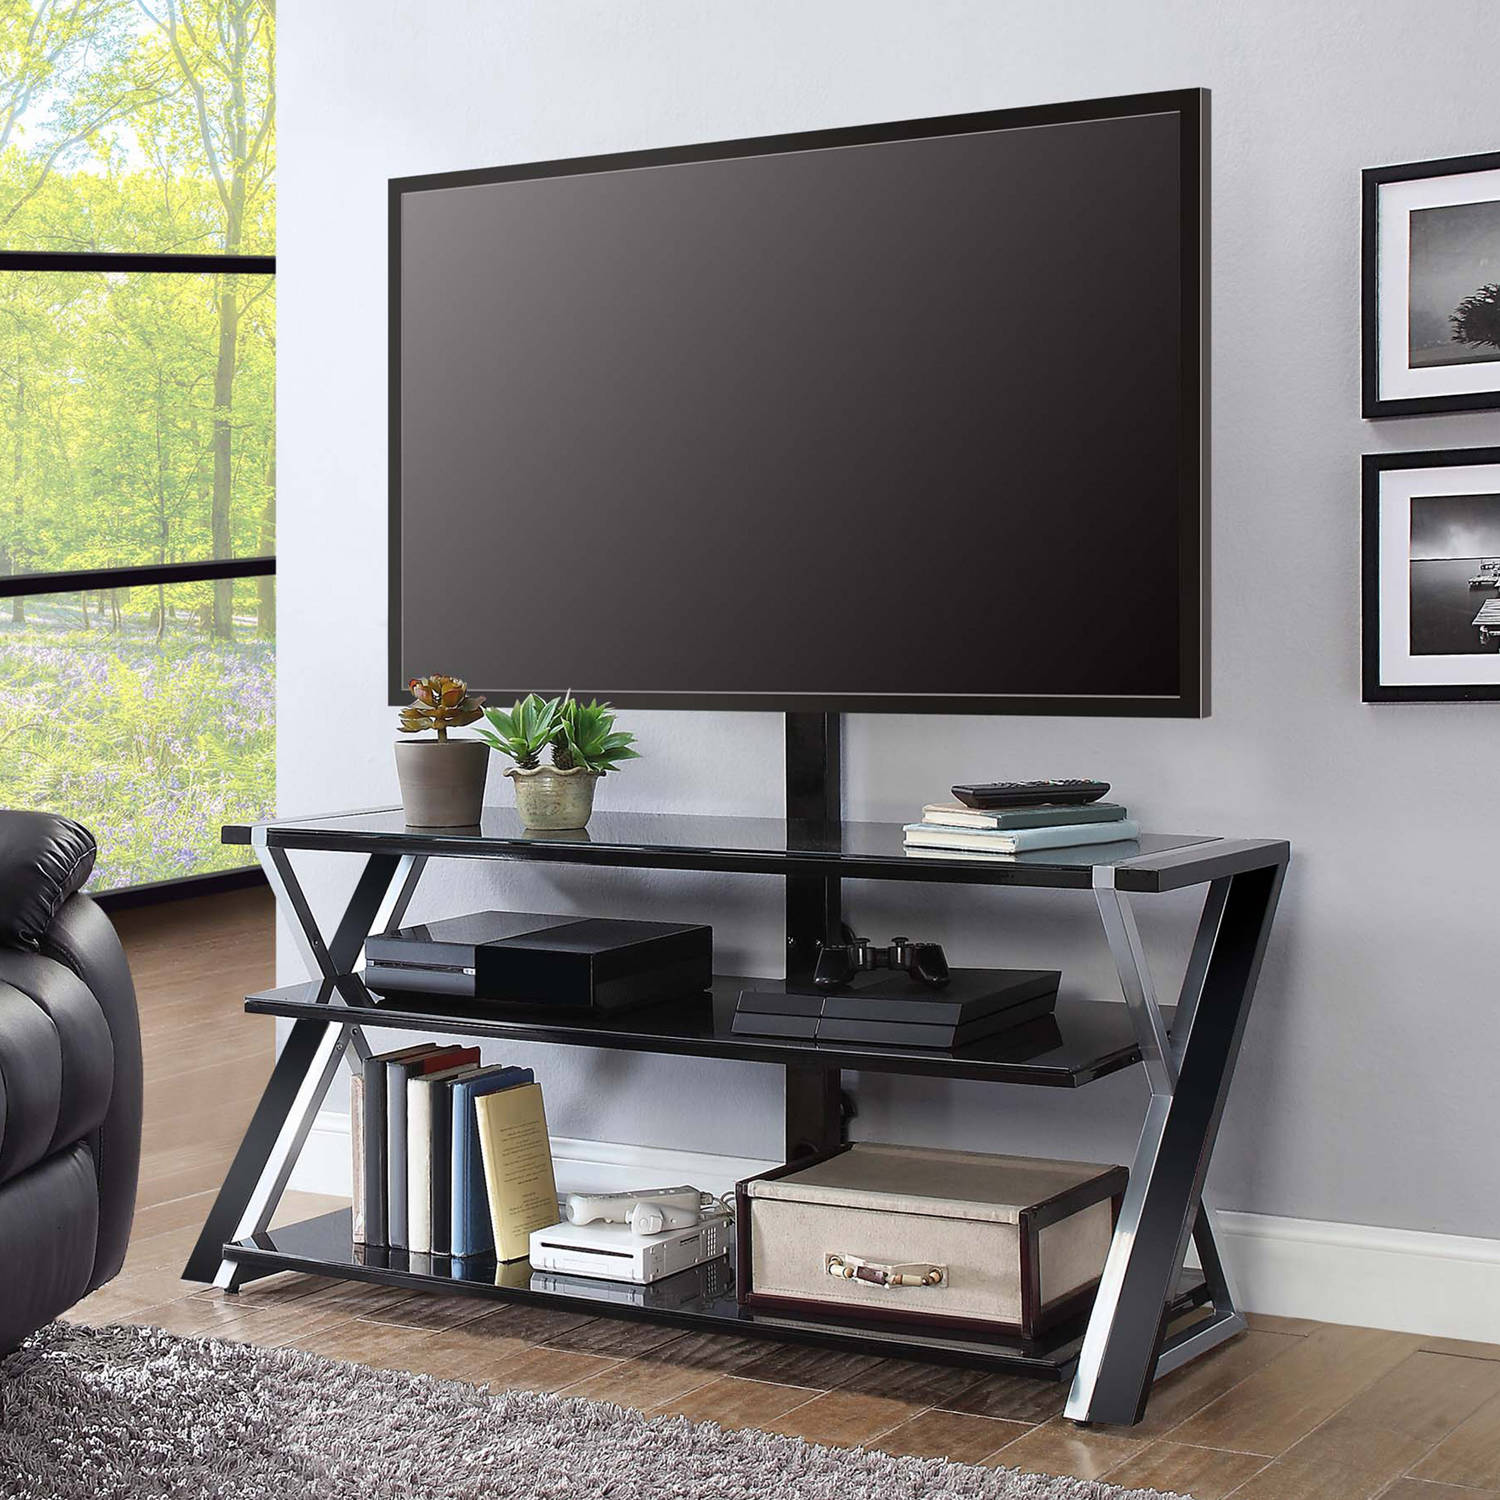 Whalen 3-in-1 Flat-Panel TV Stand, for TVs up to 70""